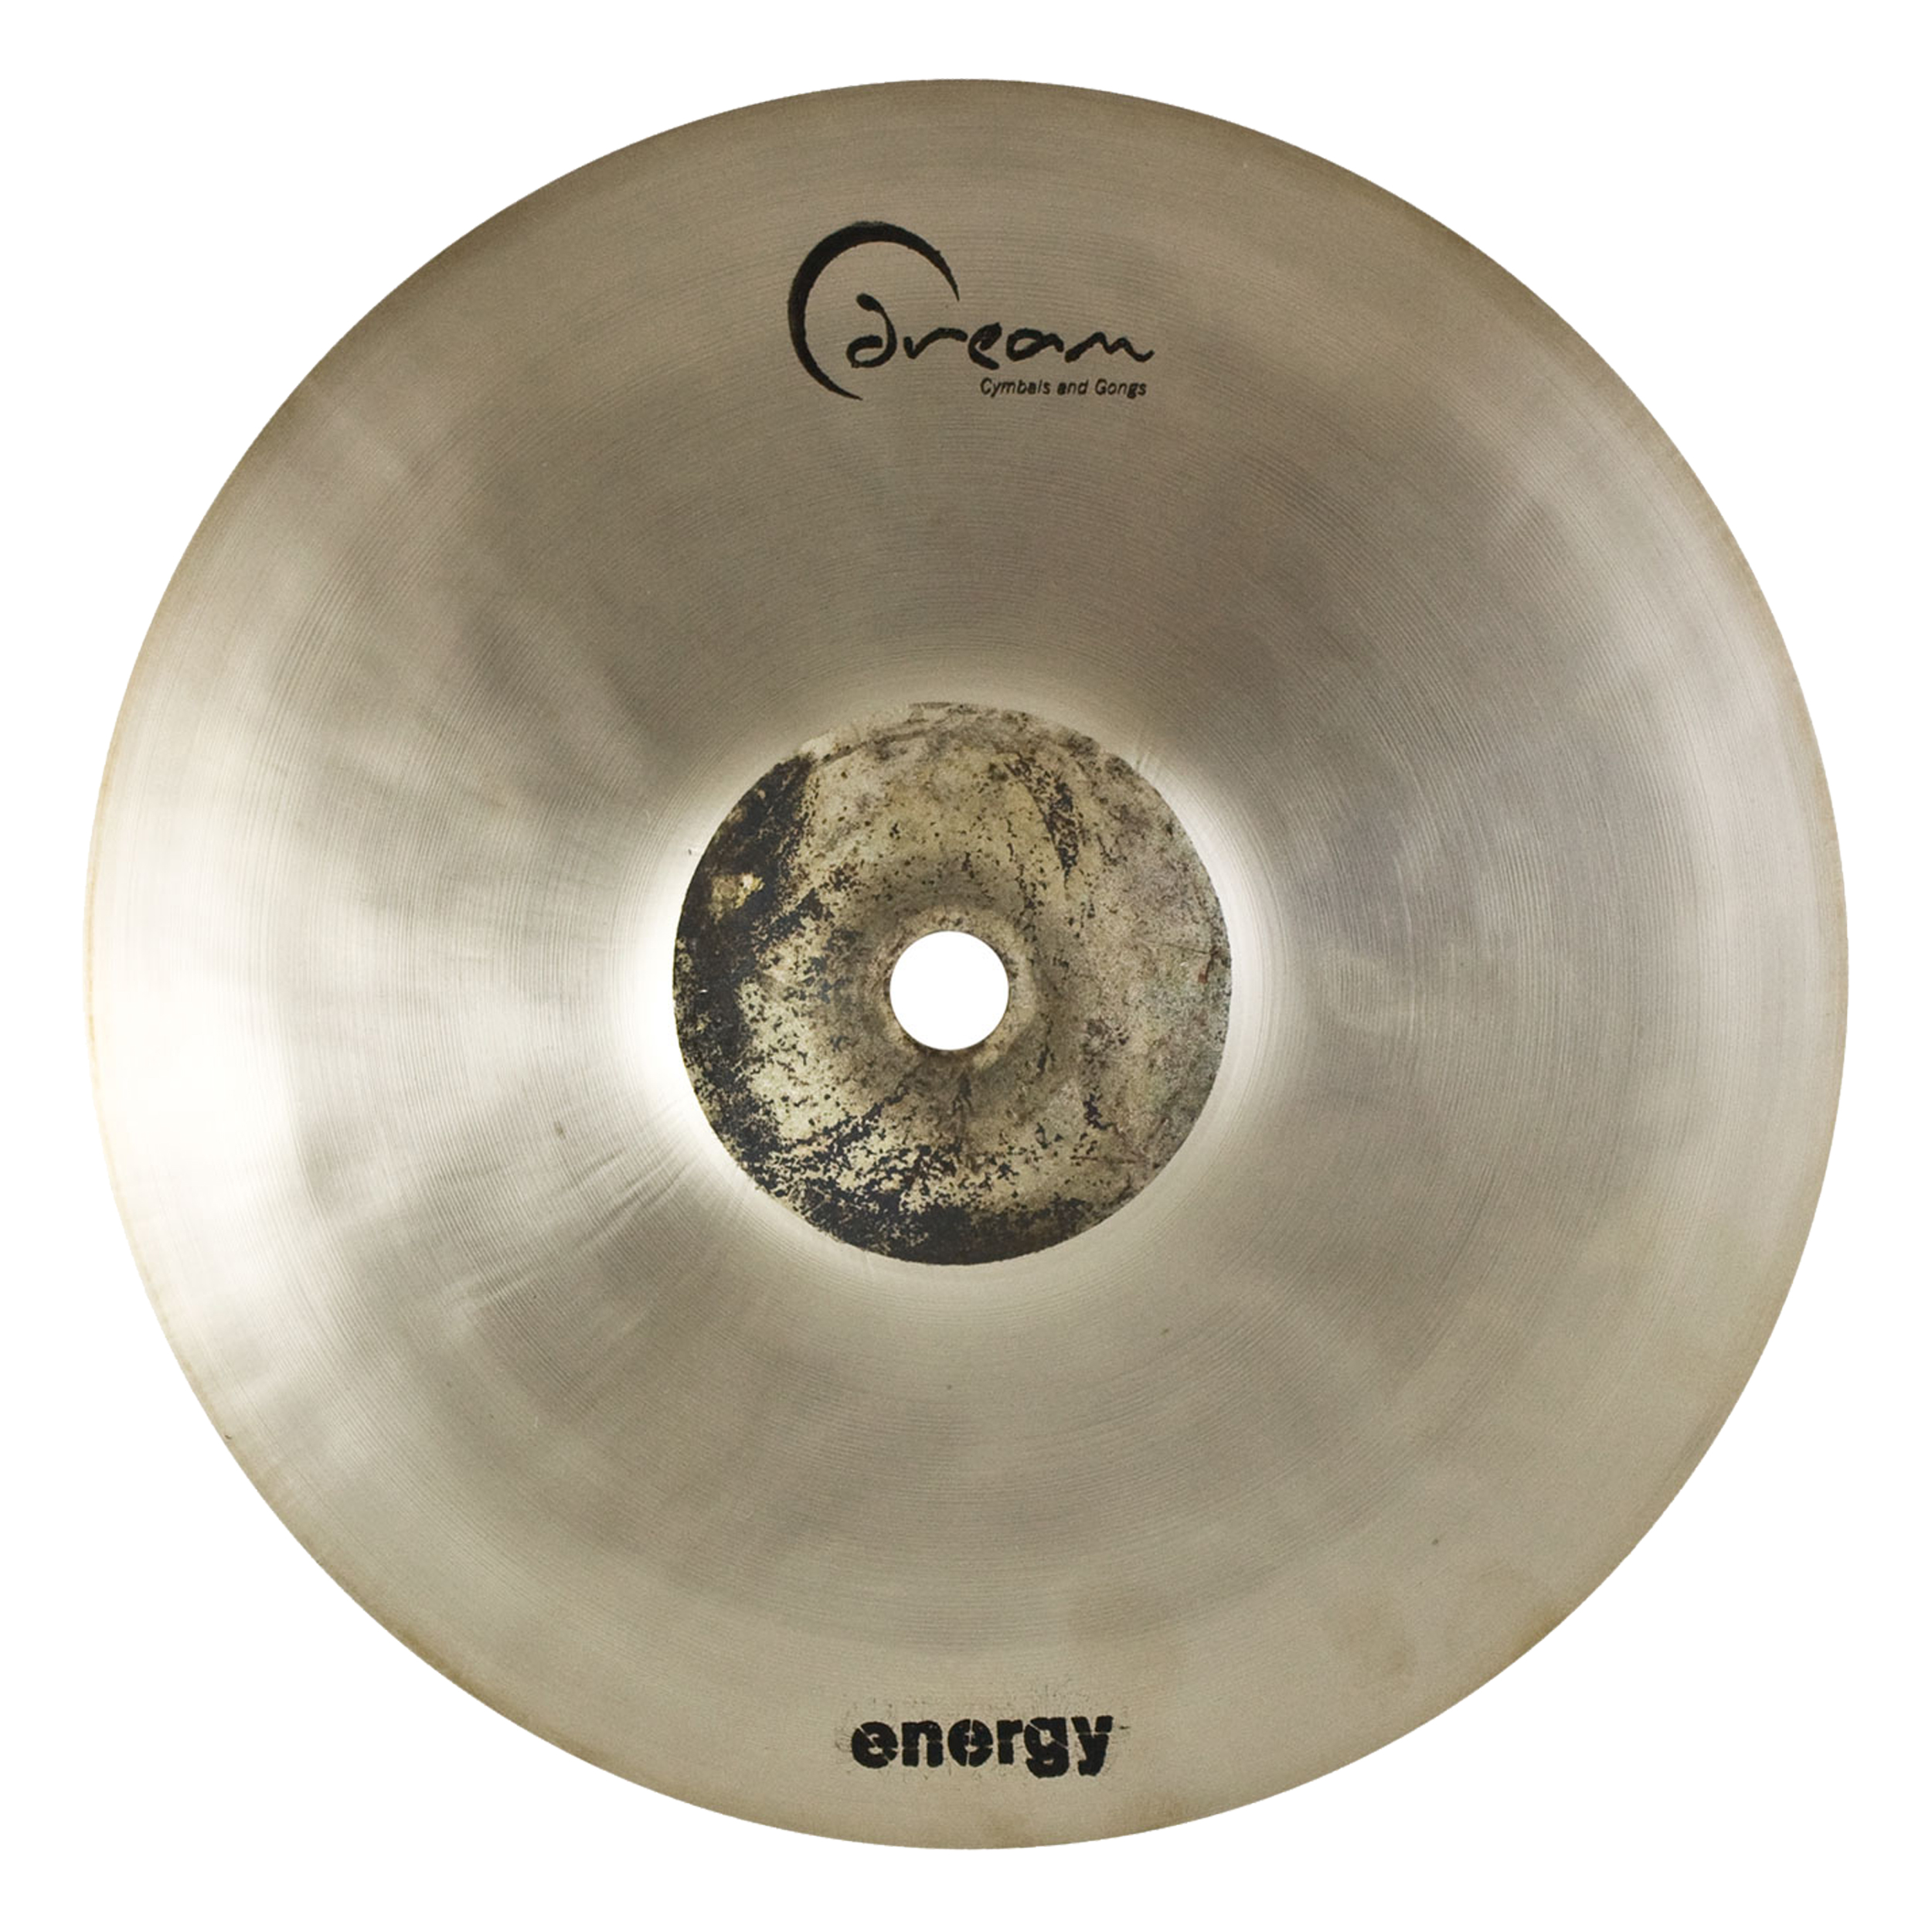 Dream ESP08 Energy 8 Splash Cymbal Hand Hammered by